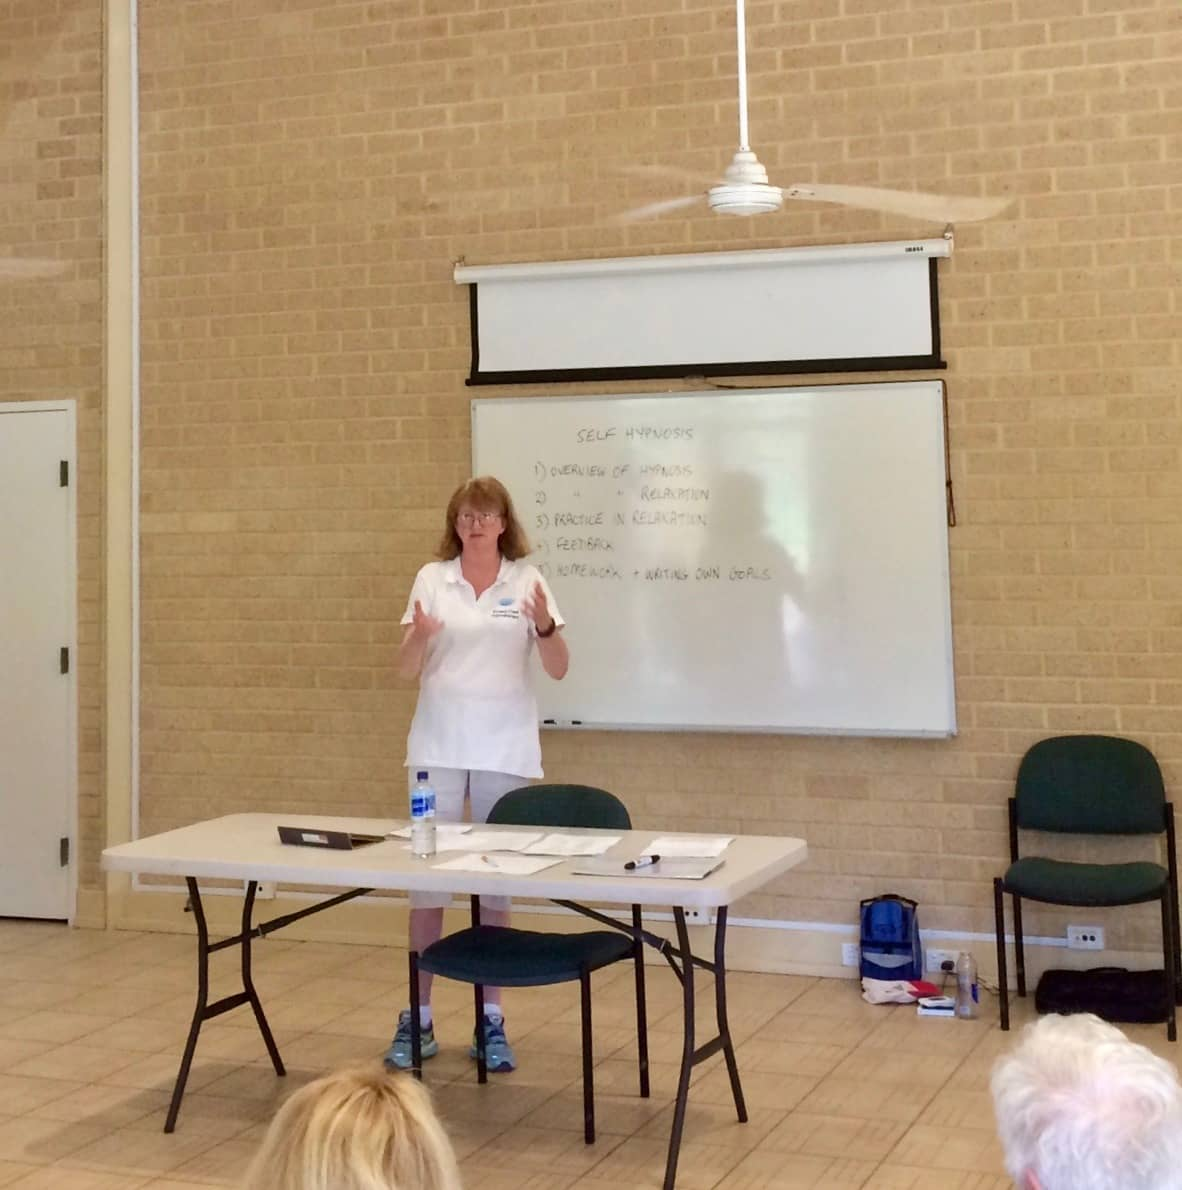 Lisa delivering course - standing at front of room speaking